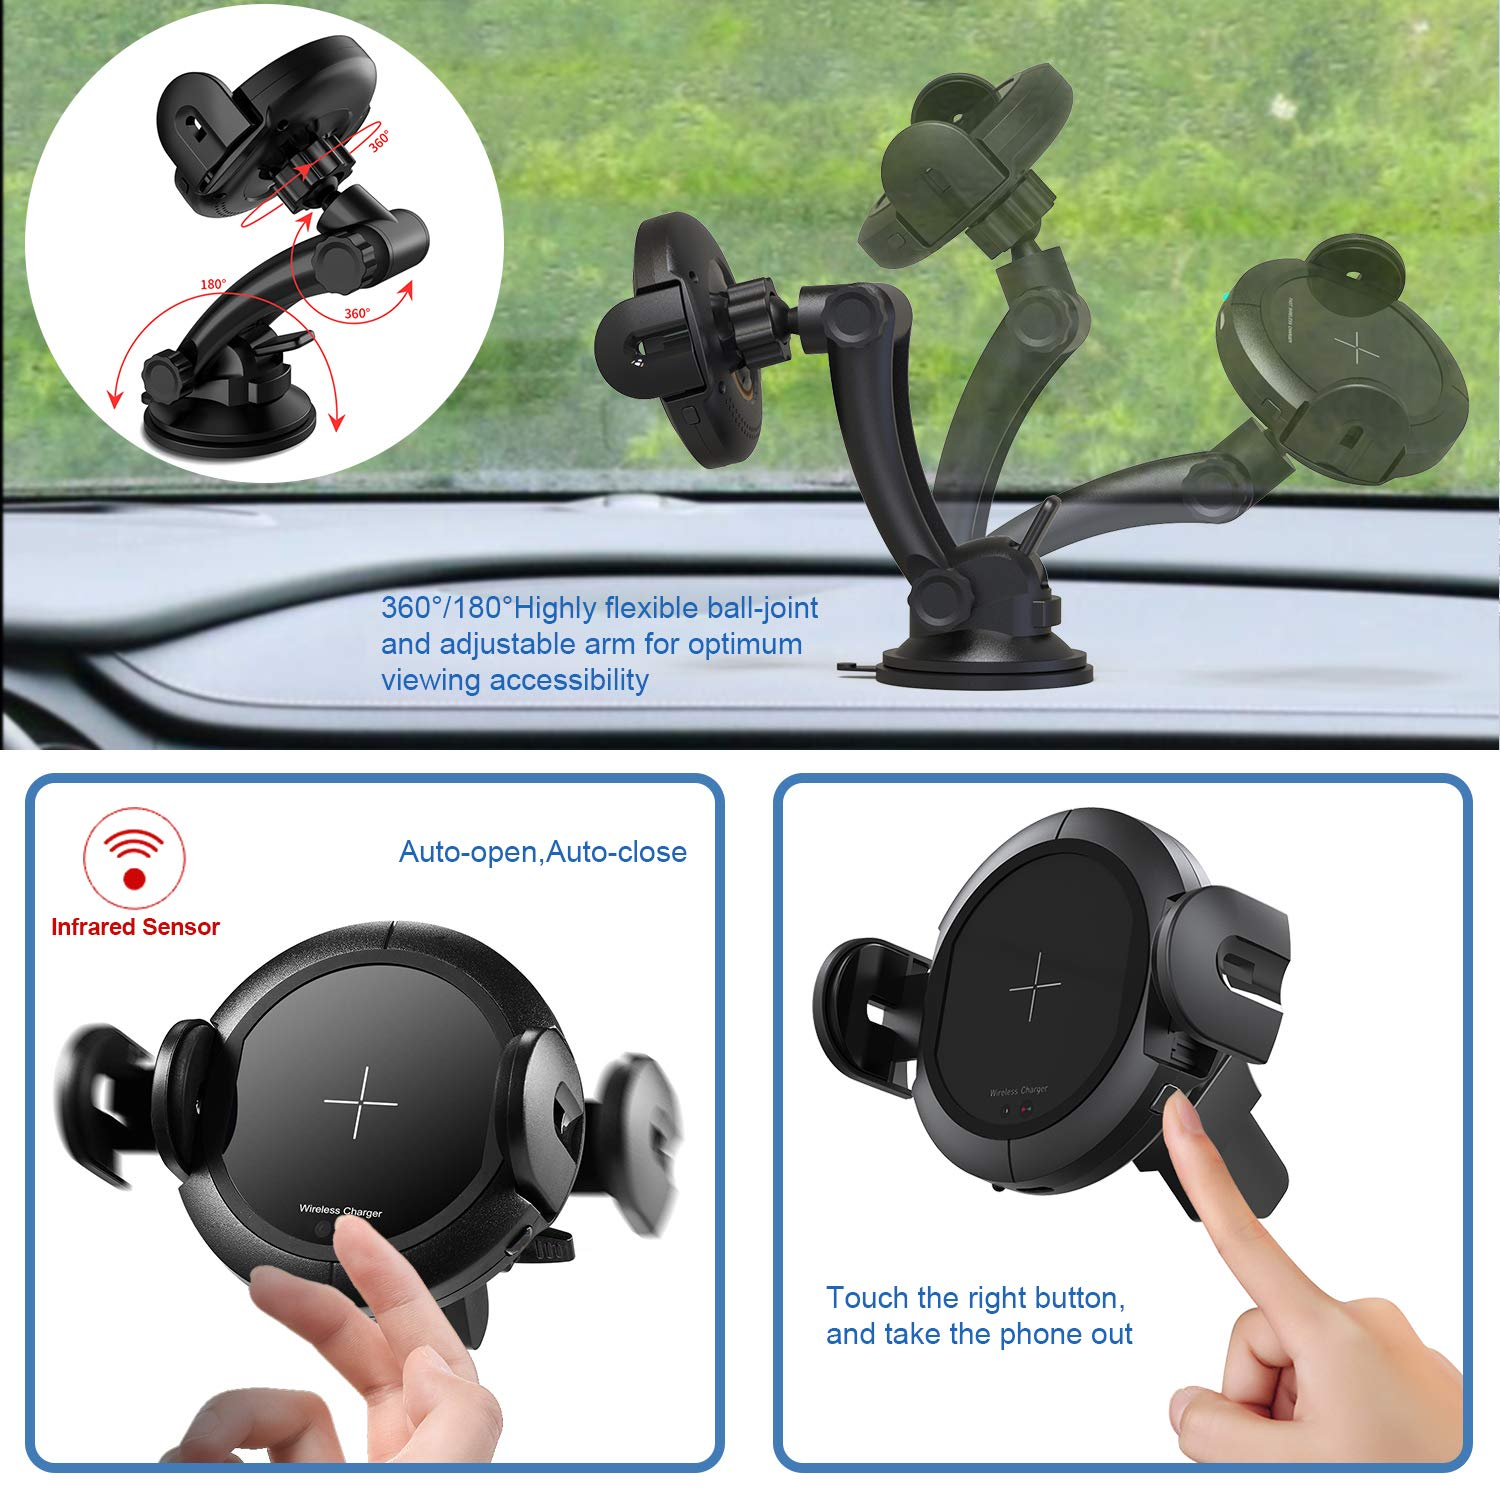 KOAKUMA Wireless Car Charger Mount, Automatic Clamping Car Mount Air Vent Phone Holder with 15W QI Fast Charging Compatible with iPhone X/XS Max/XS/XR/8/8 Plus, Samsung Galaxy S10/S10+/S9/S9+/Note 9/8 by KOAKUMA (Image #3)